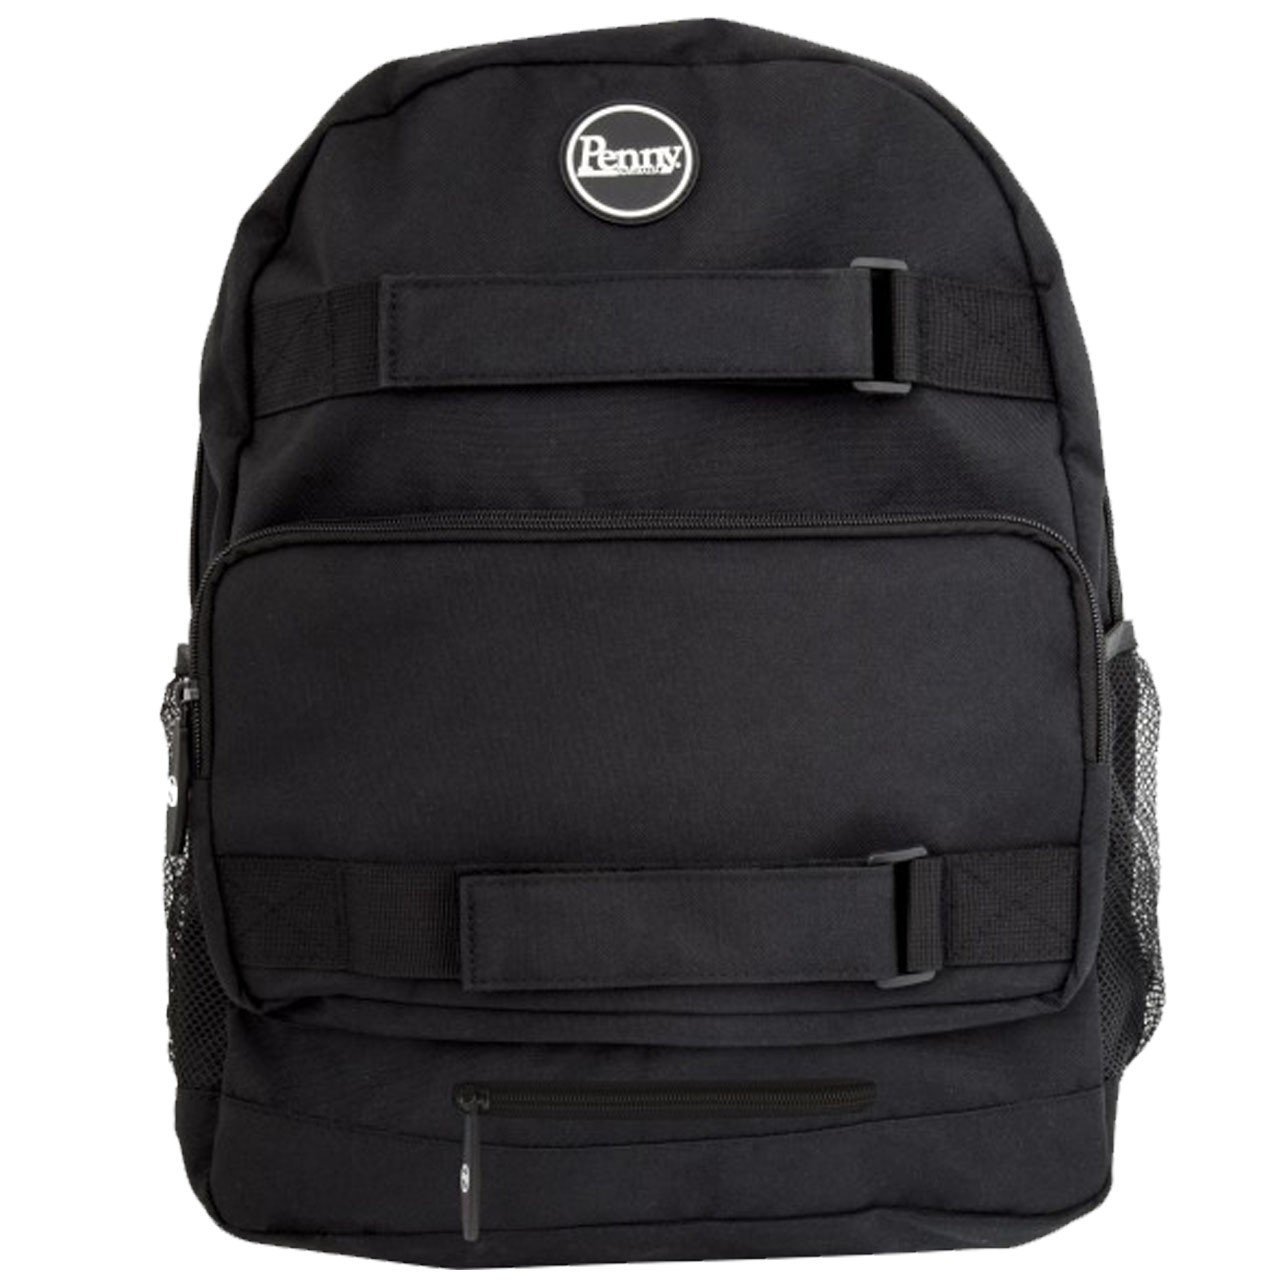 231905e02283 Penny Skateboards Pouch Backpack   Bag - All Black  Amazon.co.uk  Sports    Outdoors